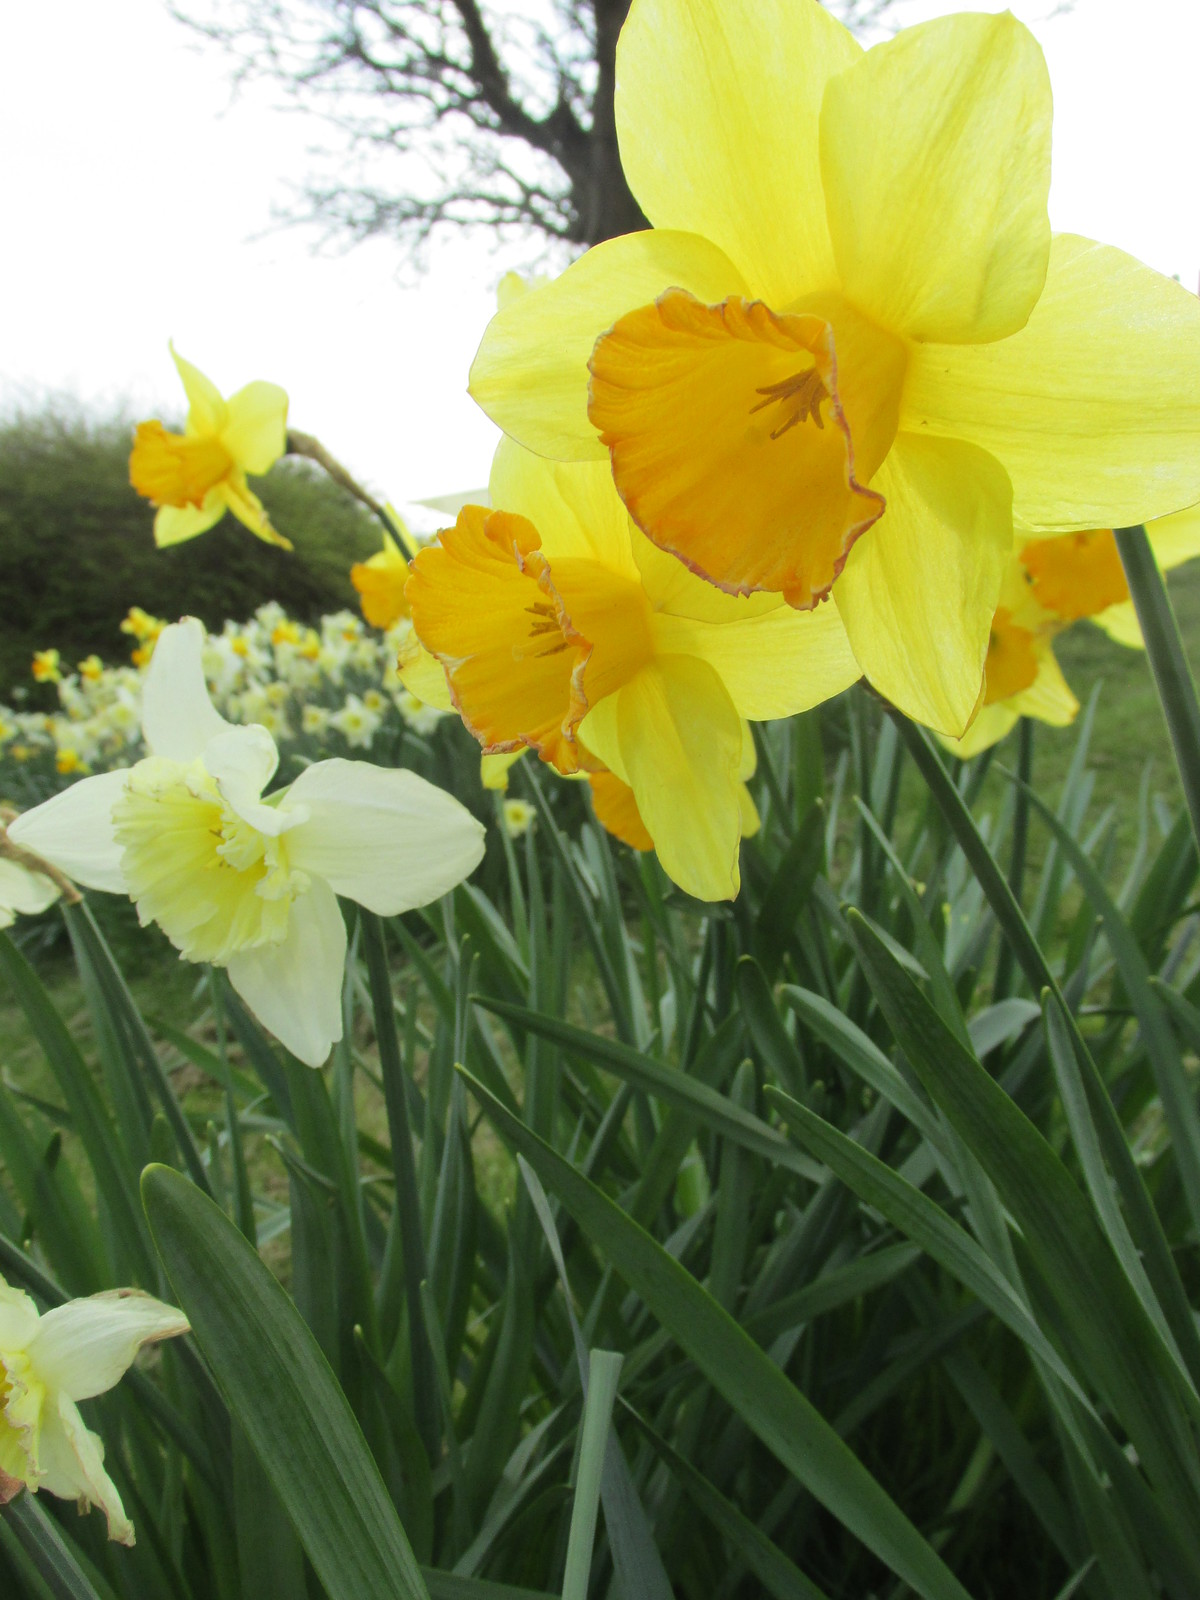 April 6, 2015: Glynde to Seaford Cuckmere Haven daffodils